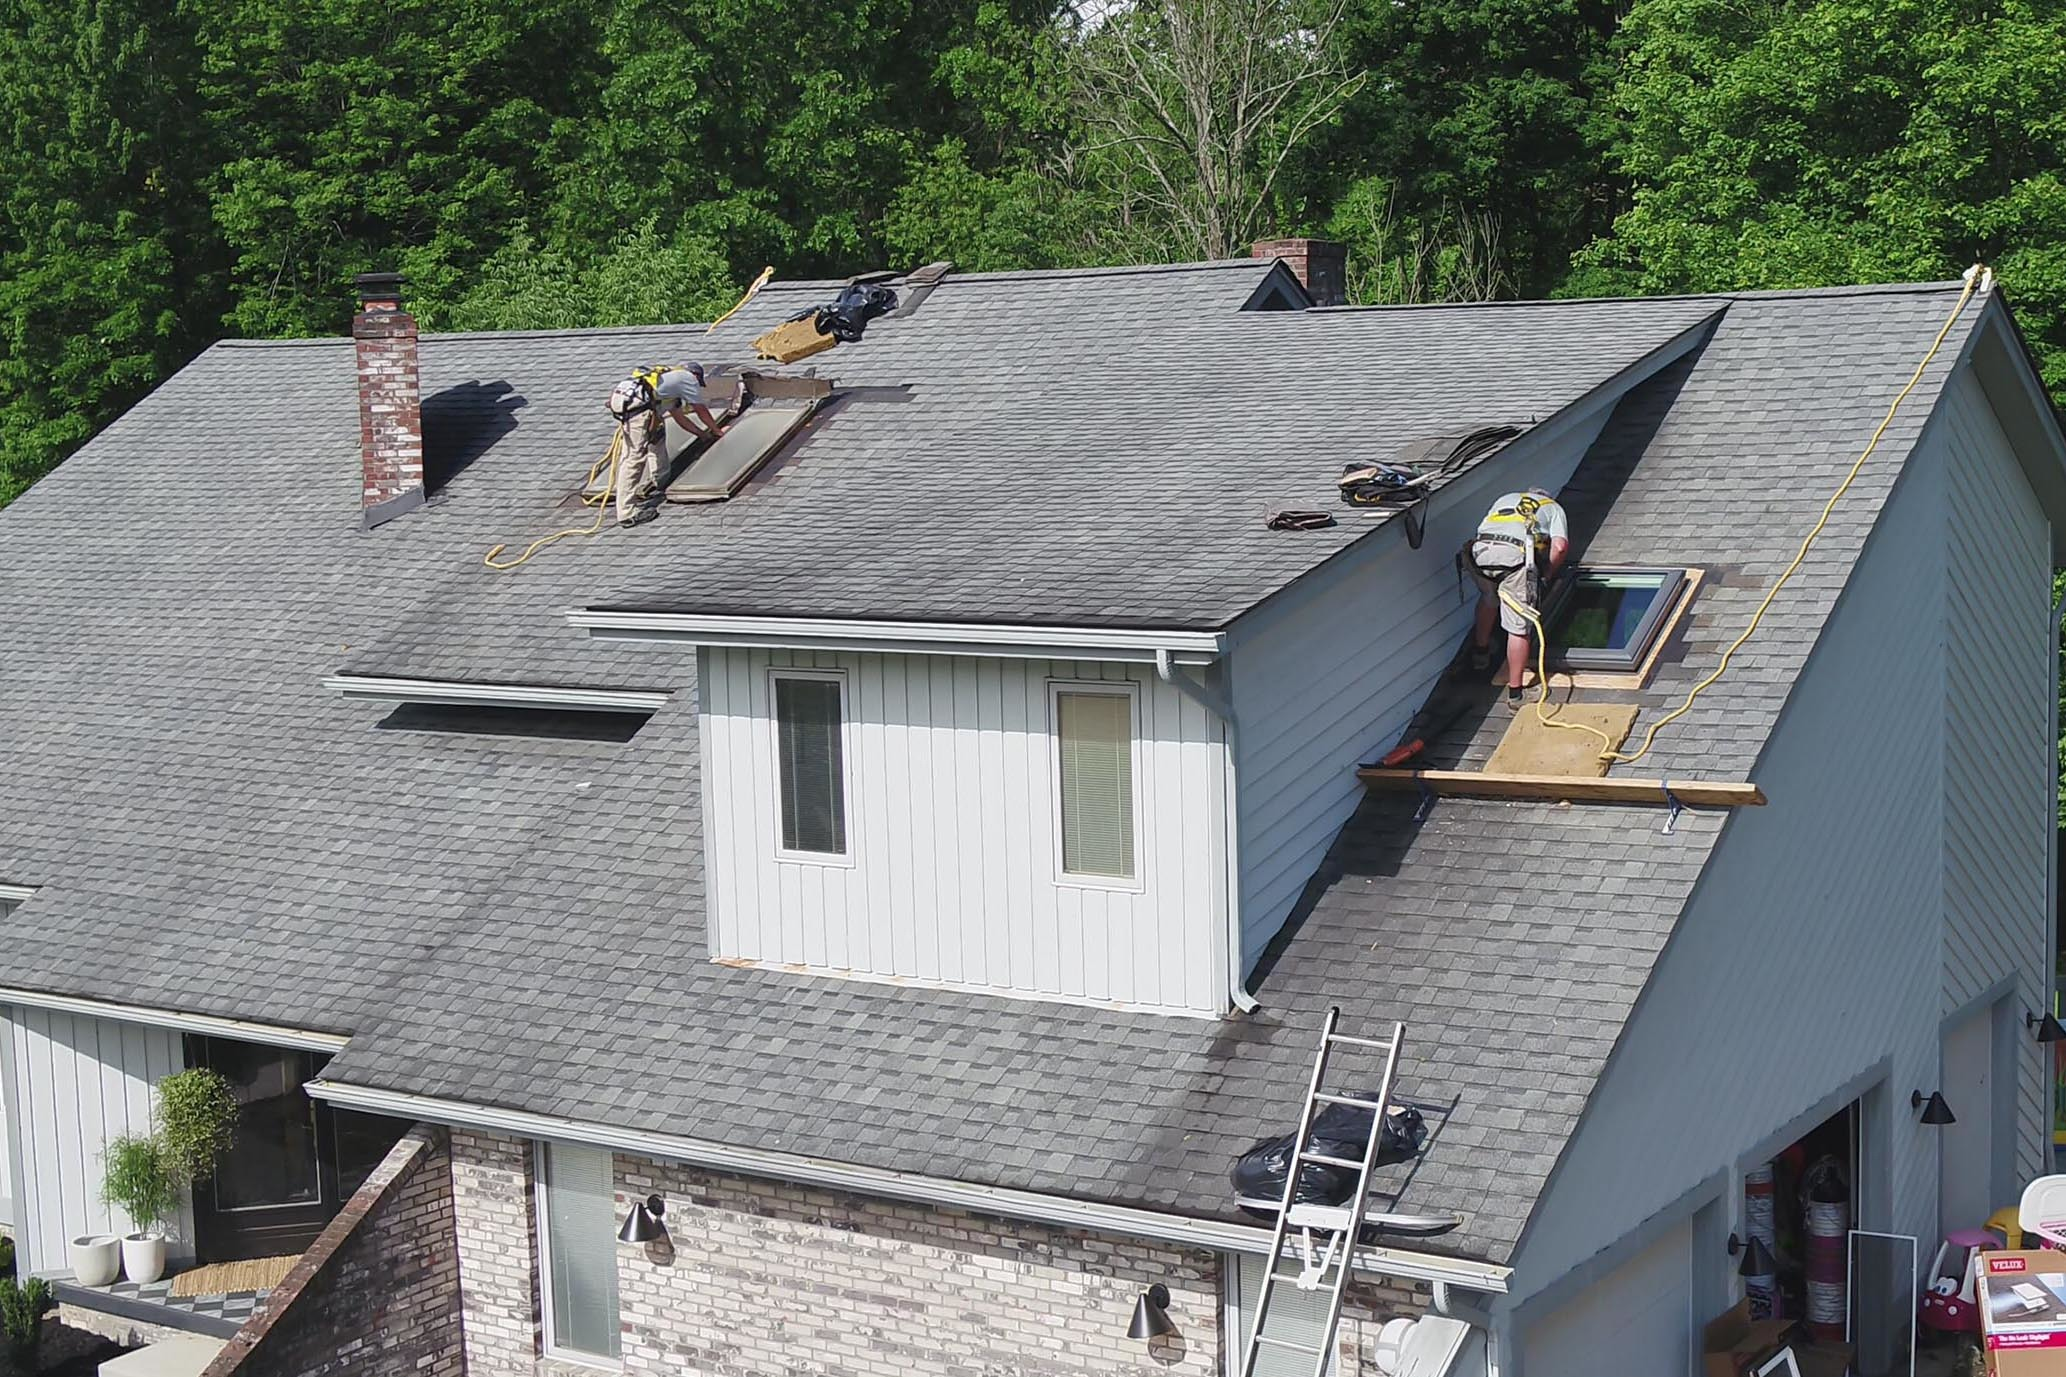 Skylight installers working on a roof small